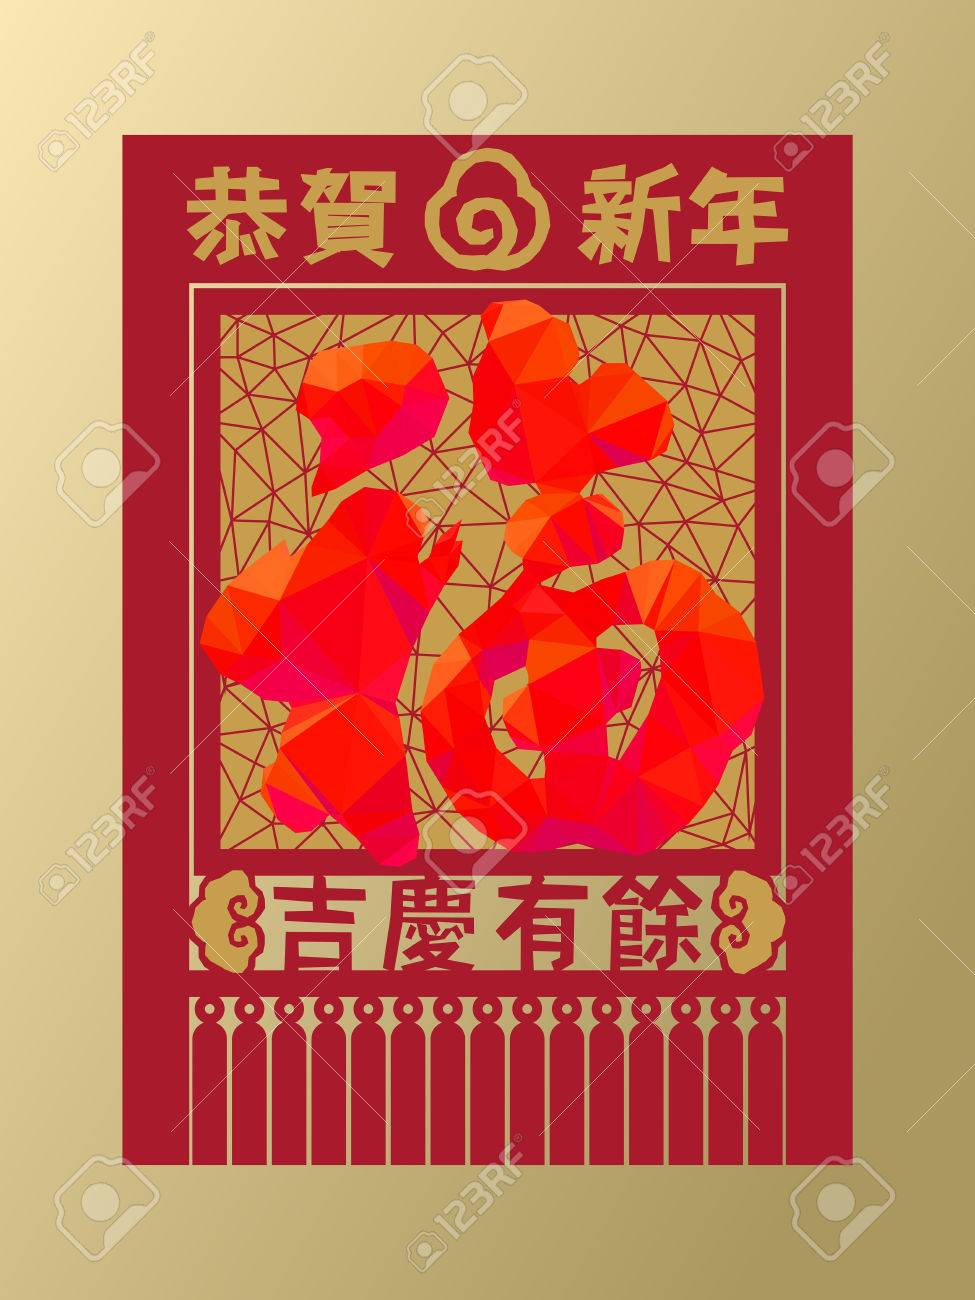 Chinese New Year Traditional Greeting Card Design With Paper Cut